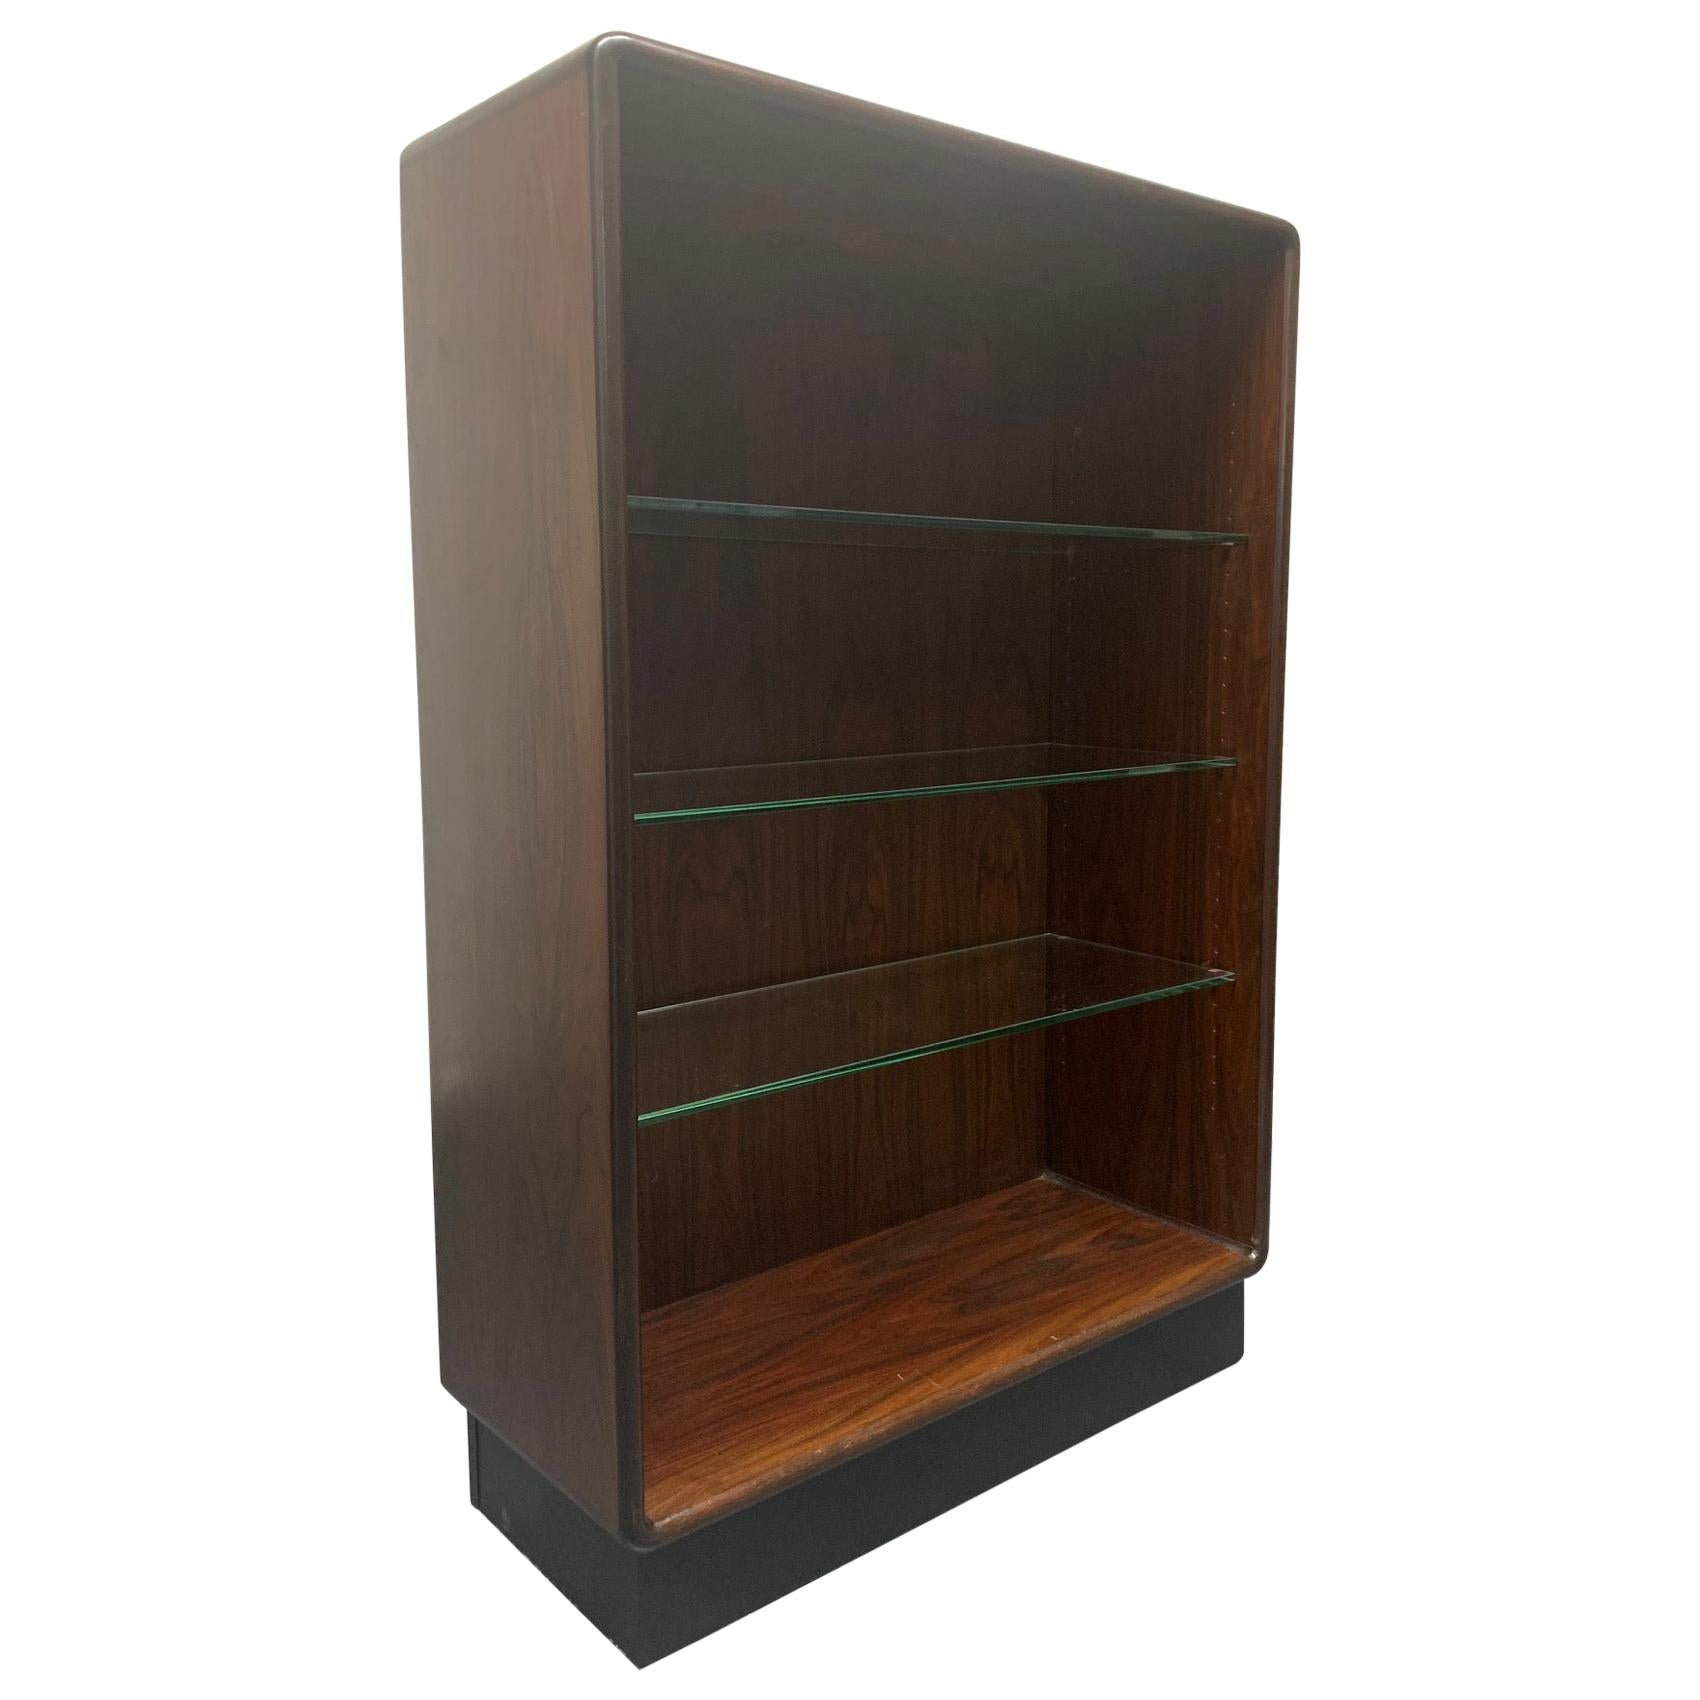 Two Danish Modern Rosewood Bookcases